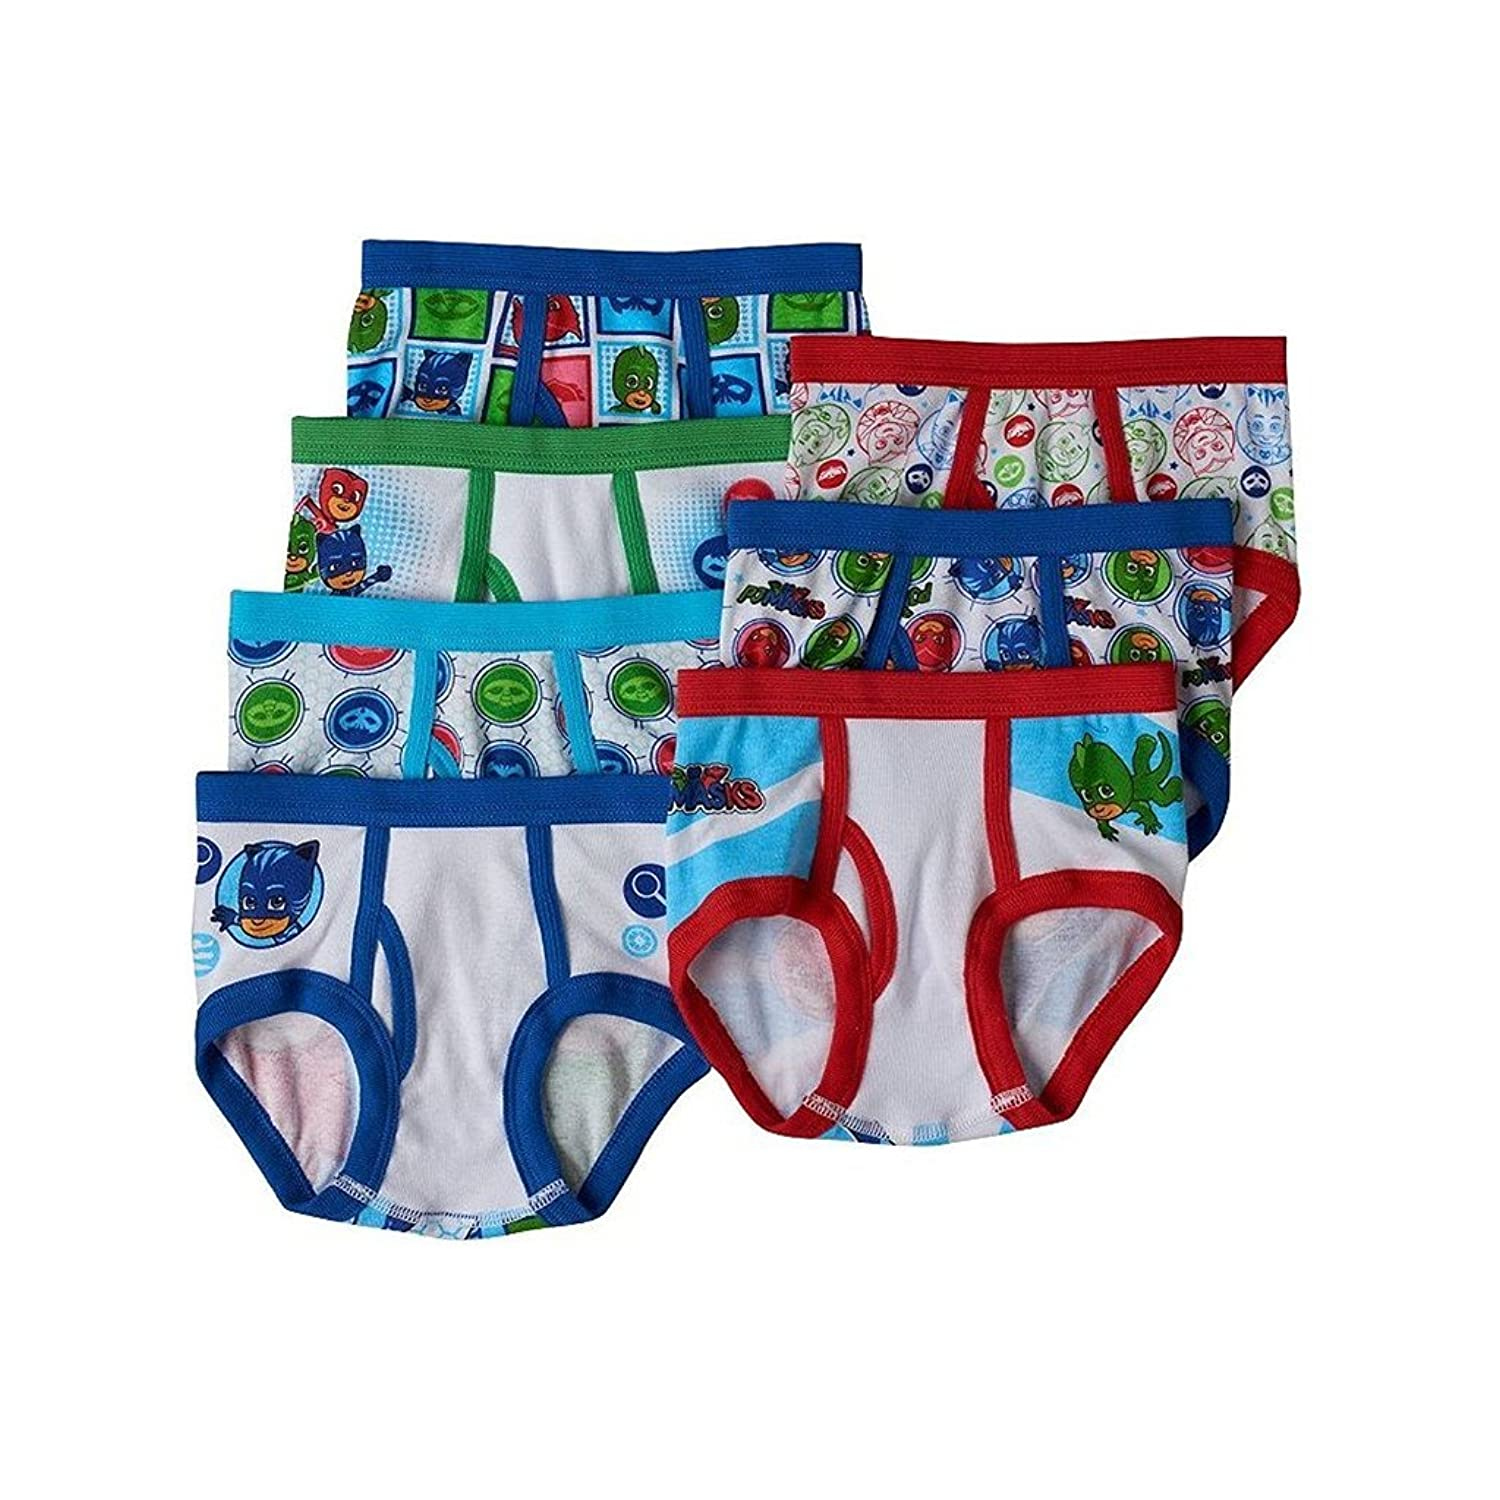 Pj Masks Gekko, Catboy & Owlette 7 Pk. Briefs Toddler Boy by Nick Jr.